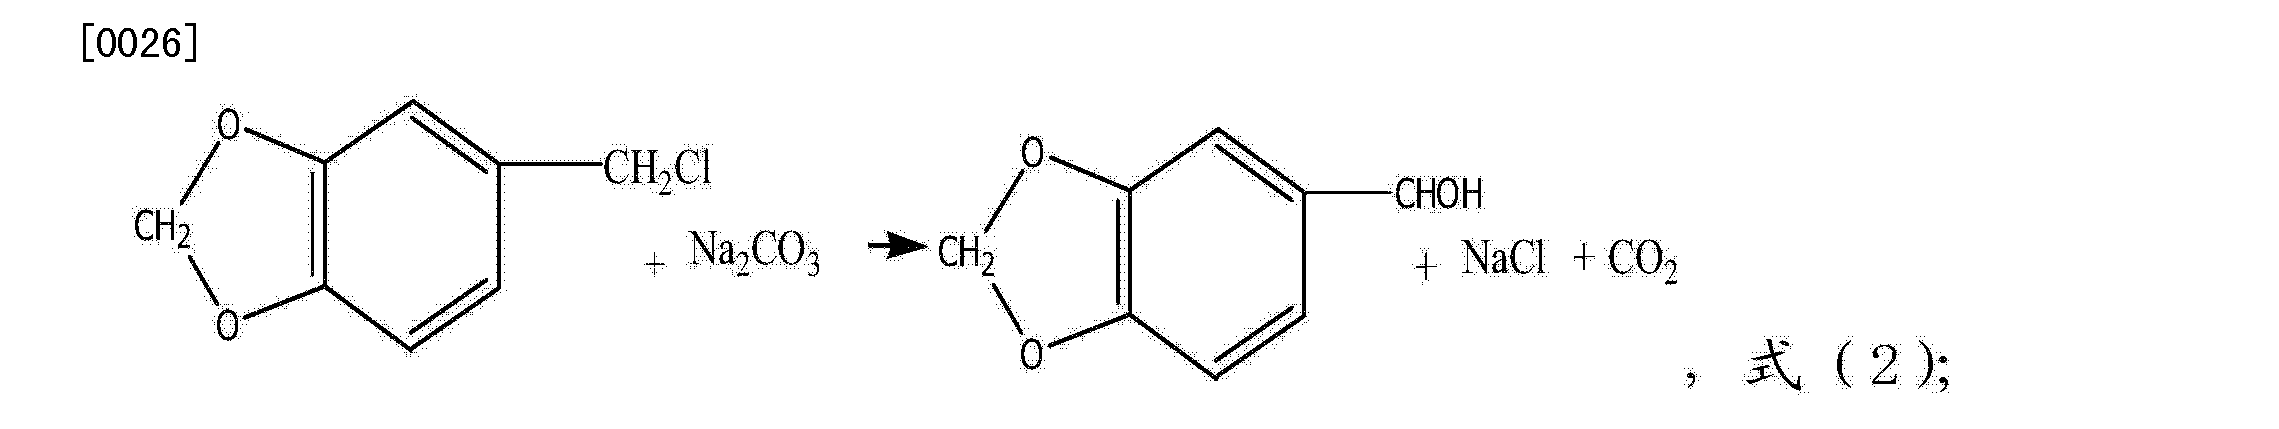 CN103936709A - Synthetic method of piperonal - Google Patents